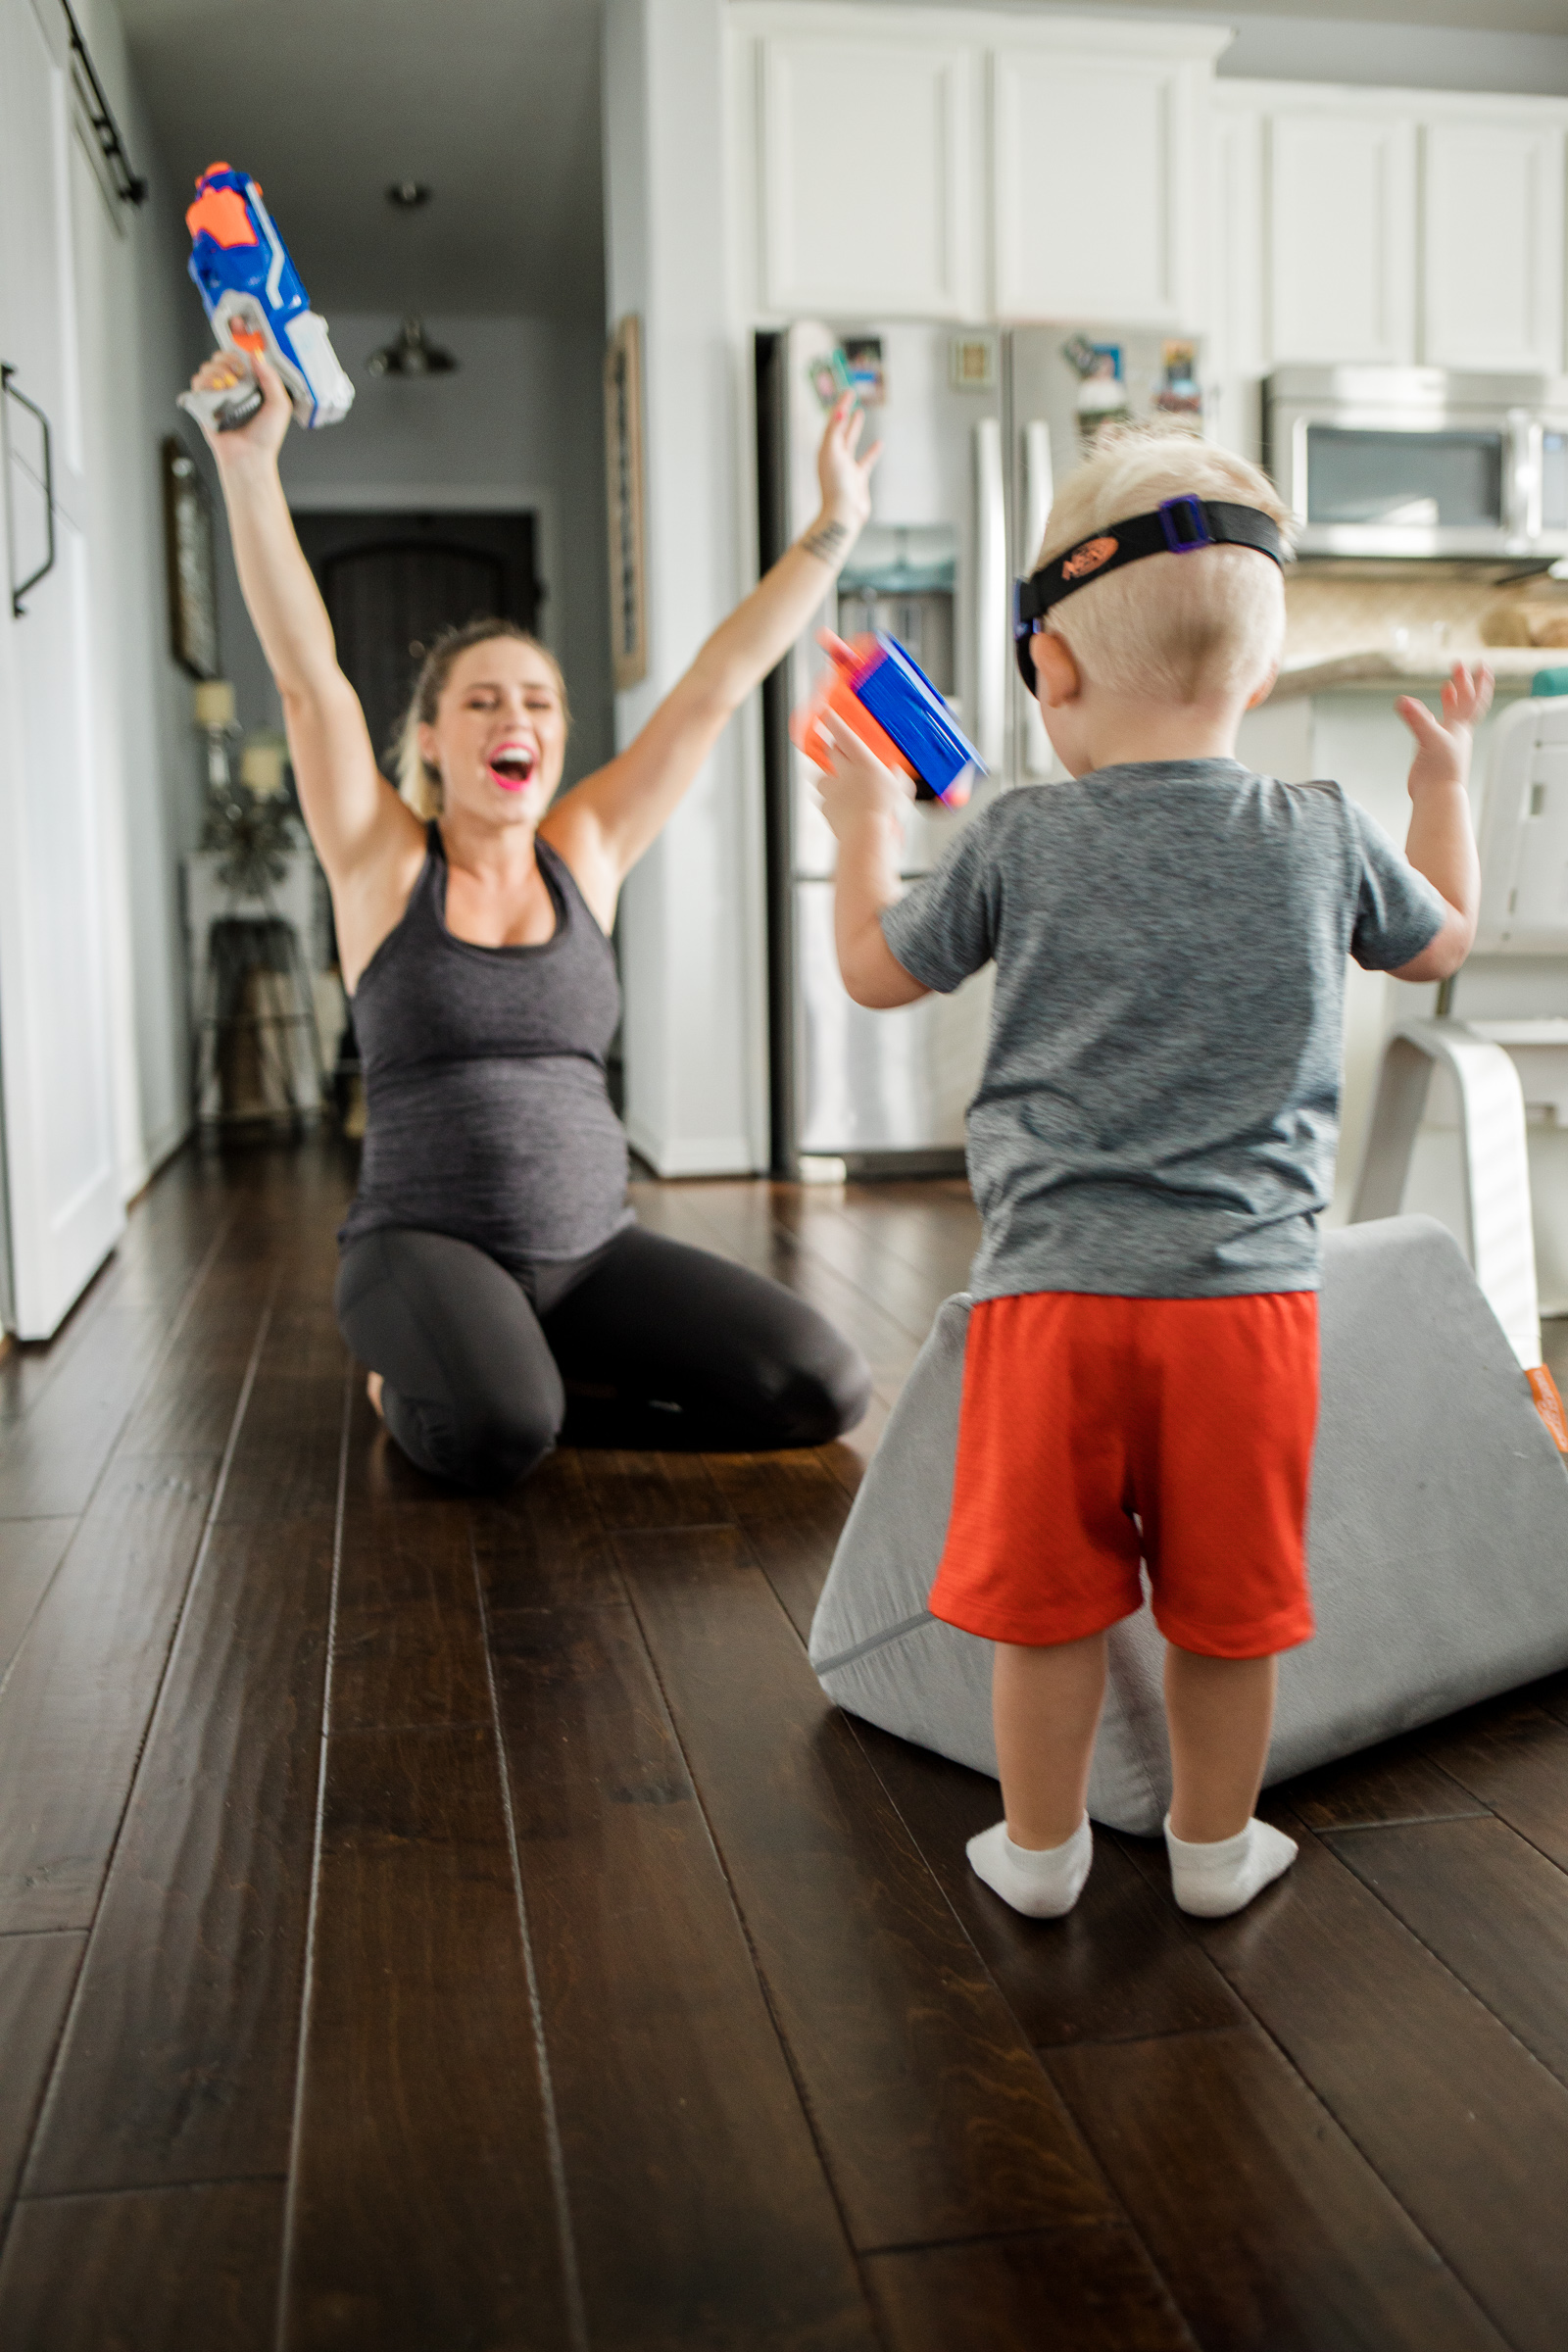 Looking for Indoor activities to beat the heat?Houston lifestyle blogger Uptown with Elly Brown shares how they beat the heat with Nerf War Games!